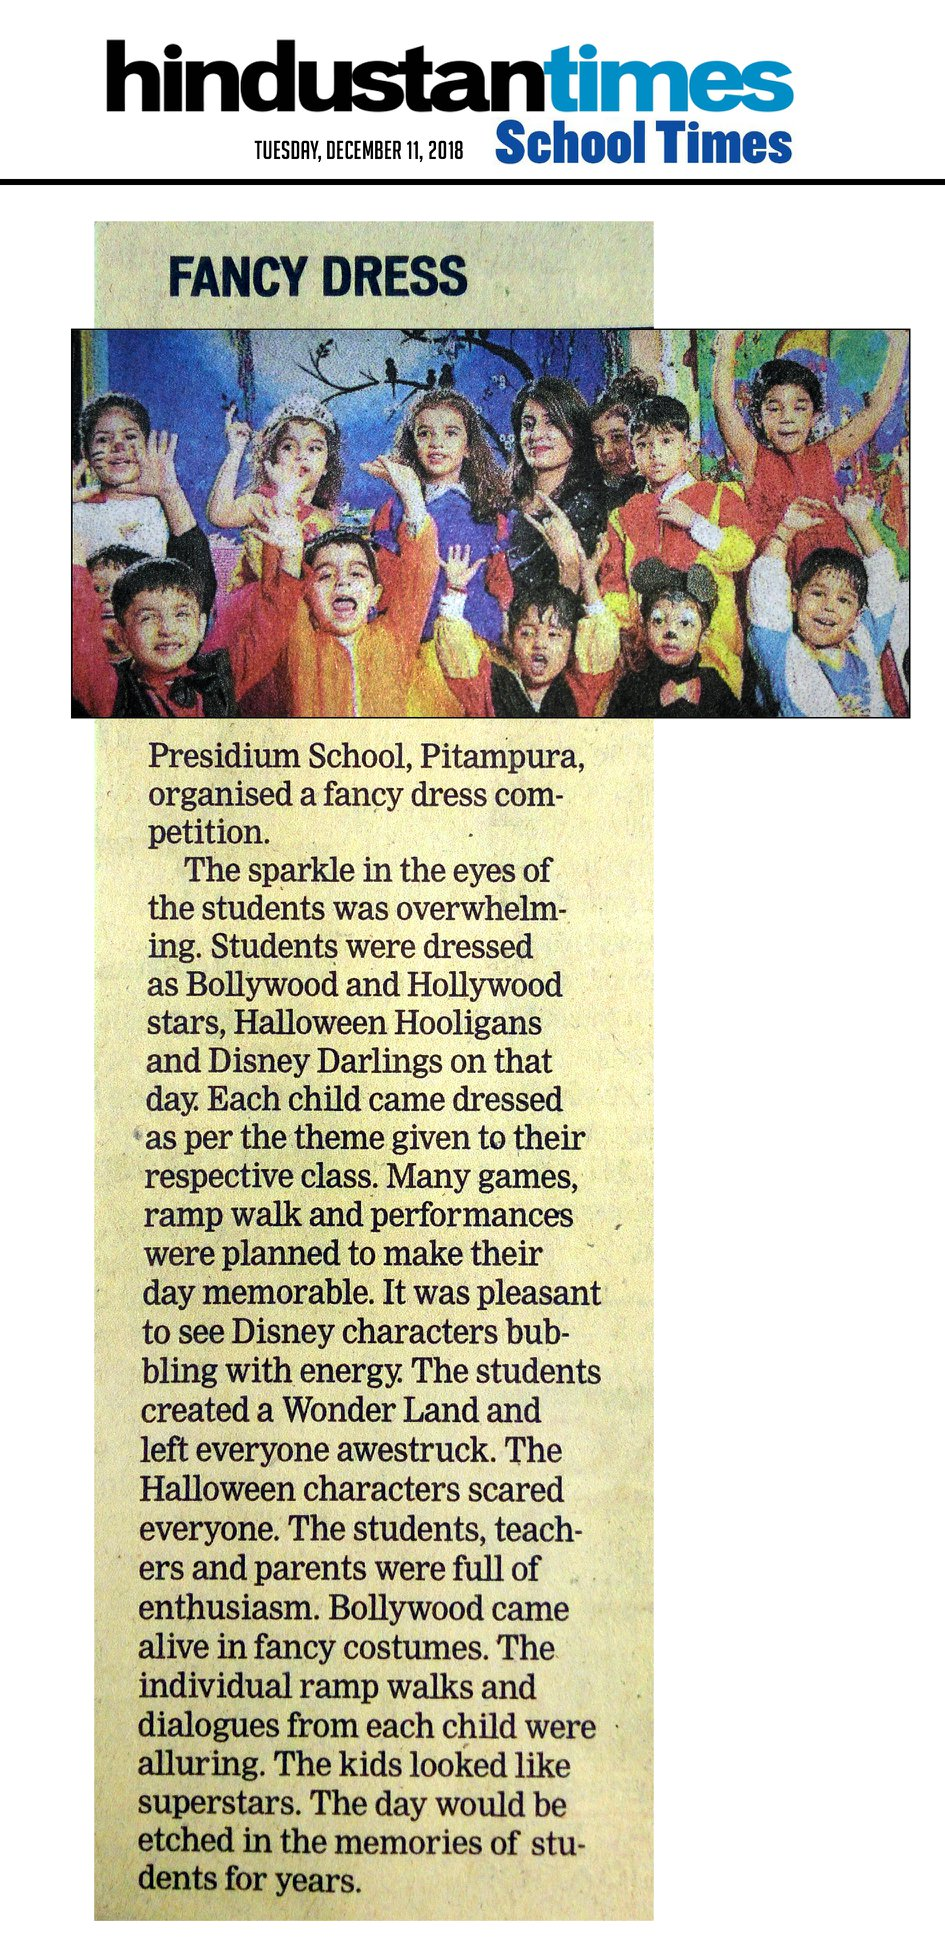 OUR FANCY DRESS DAZZLERS MAKE IT TO HINDUSTAN TIMES